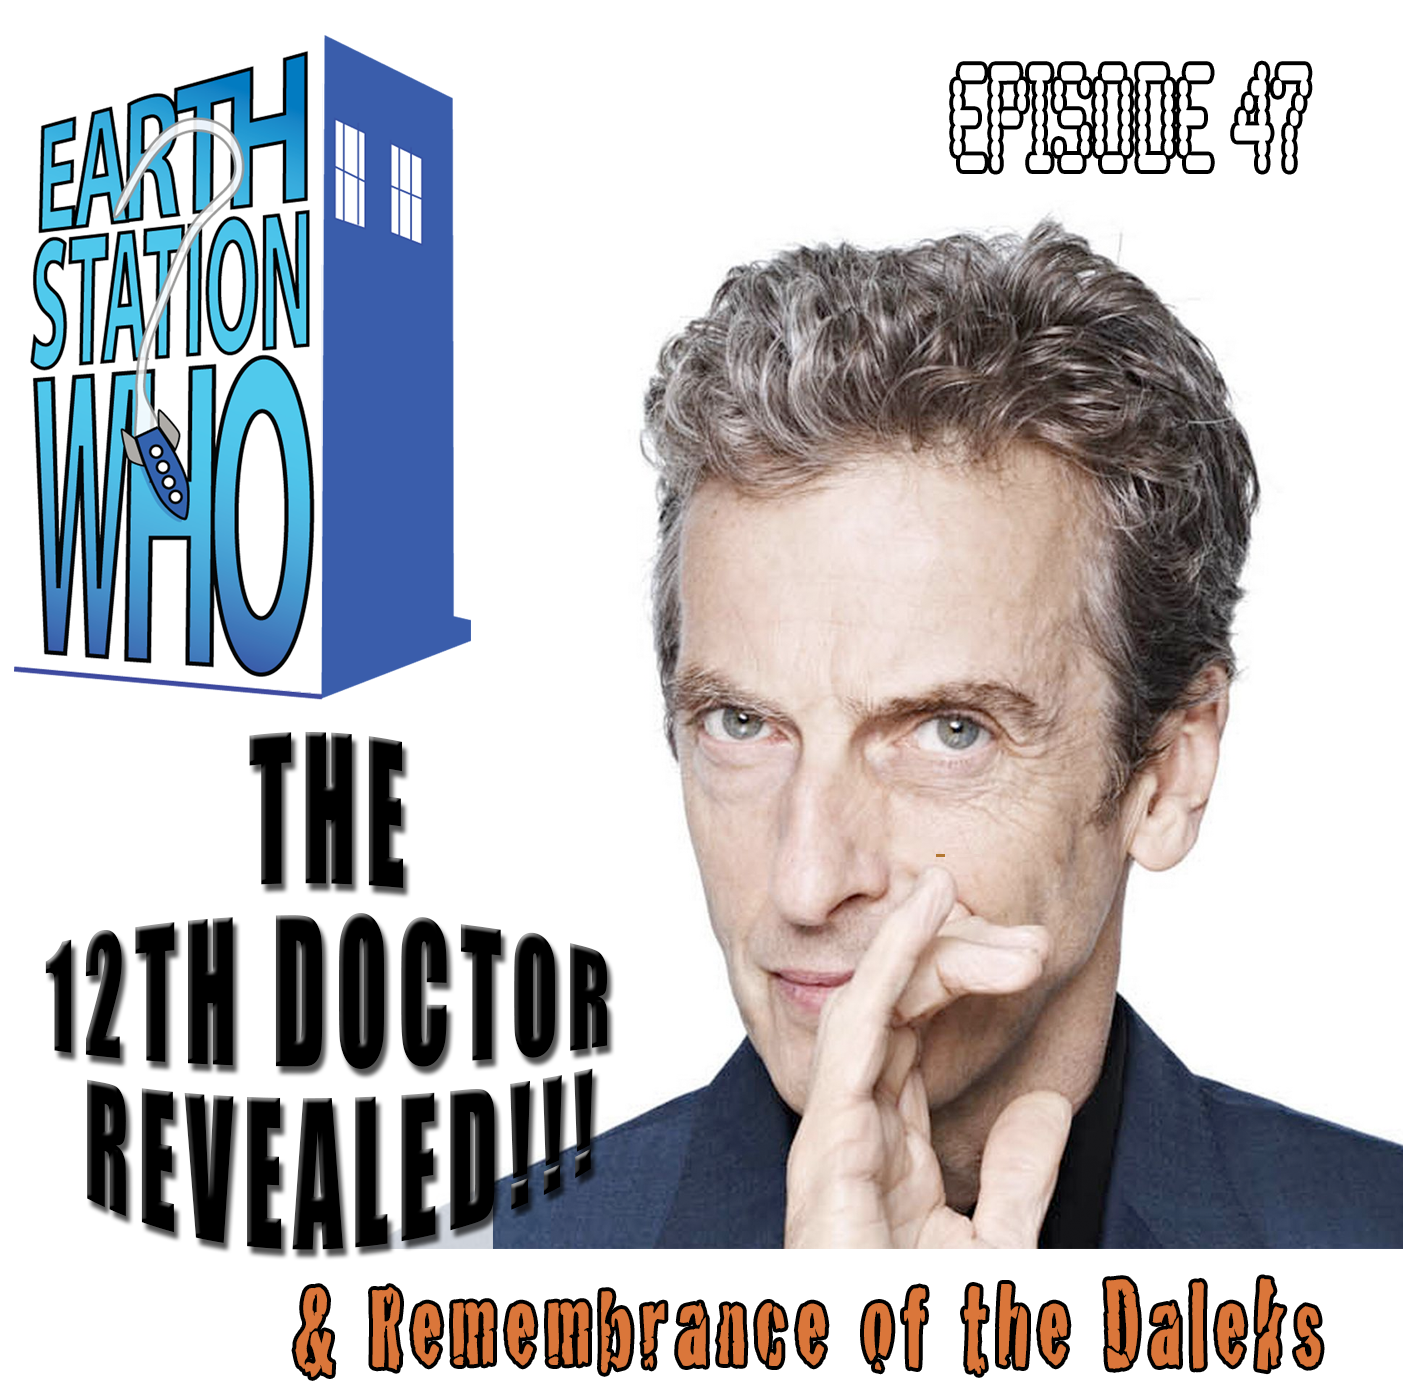 Earth Station Who Episode 47